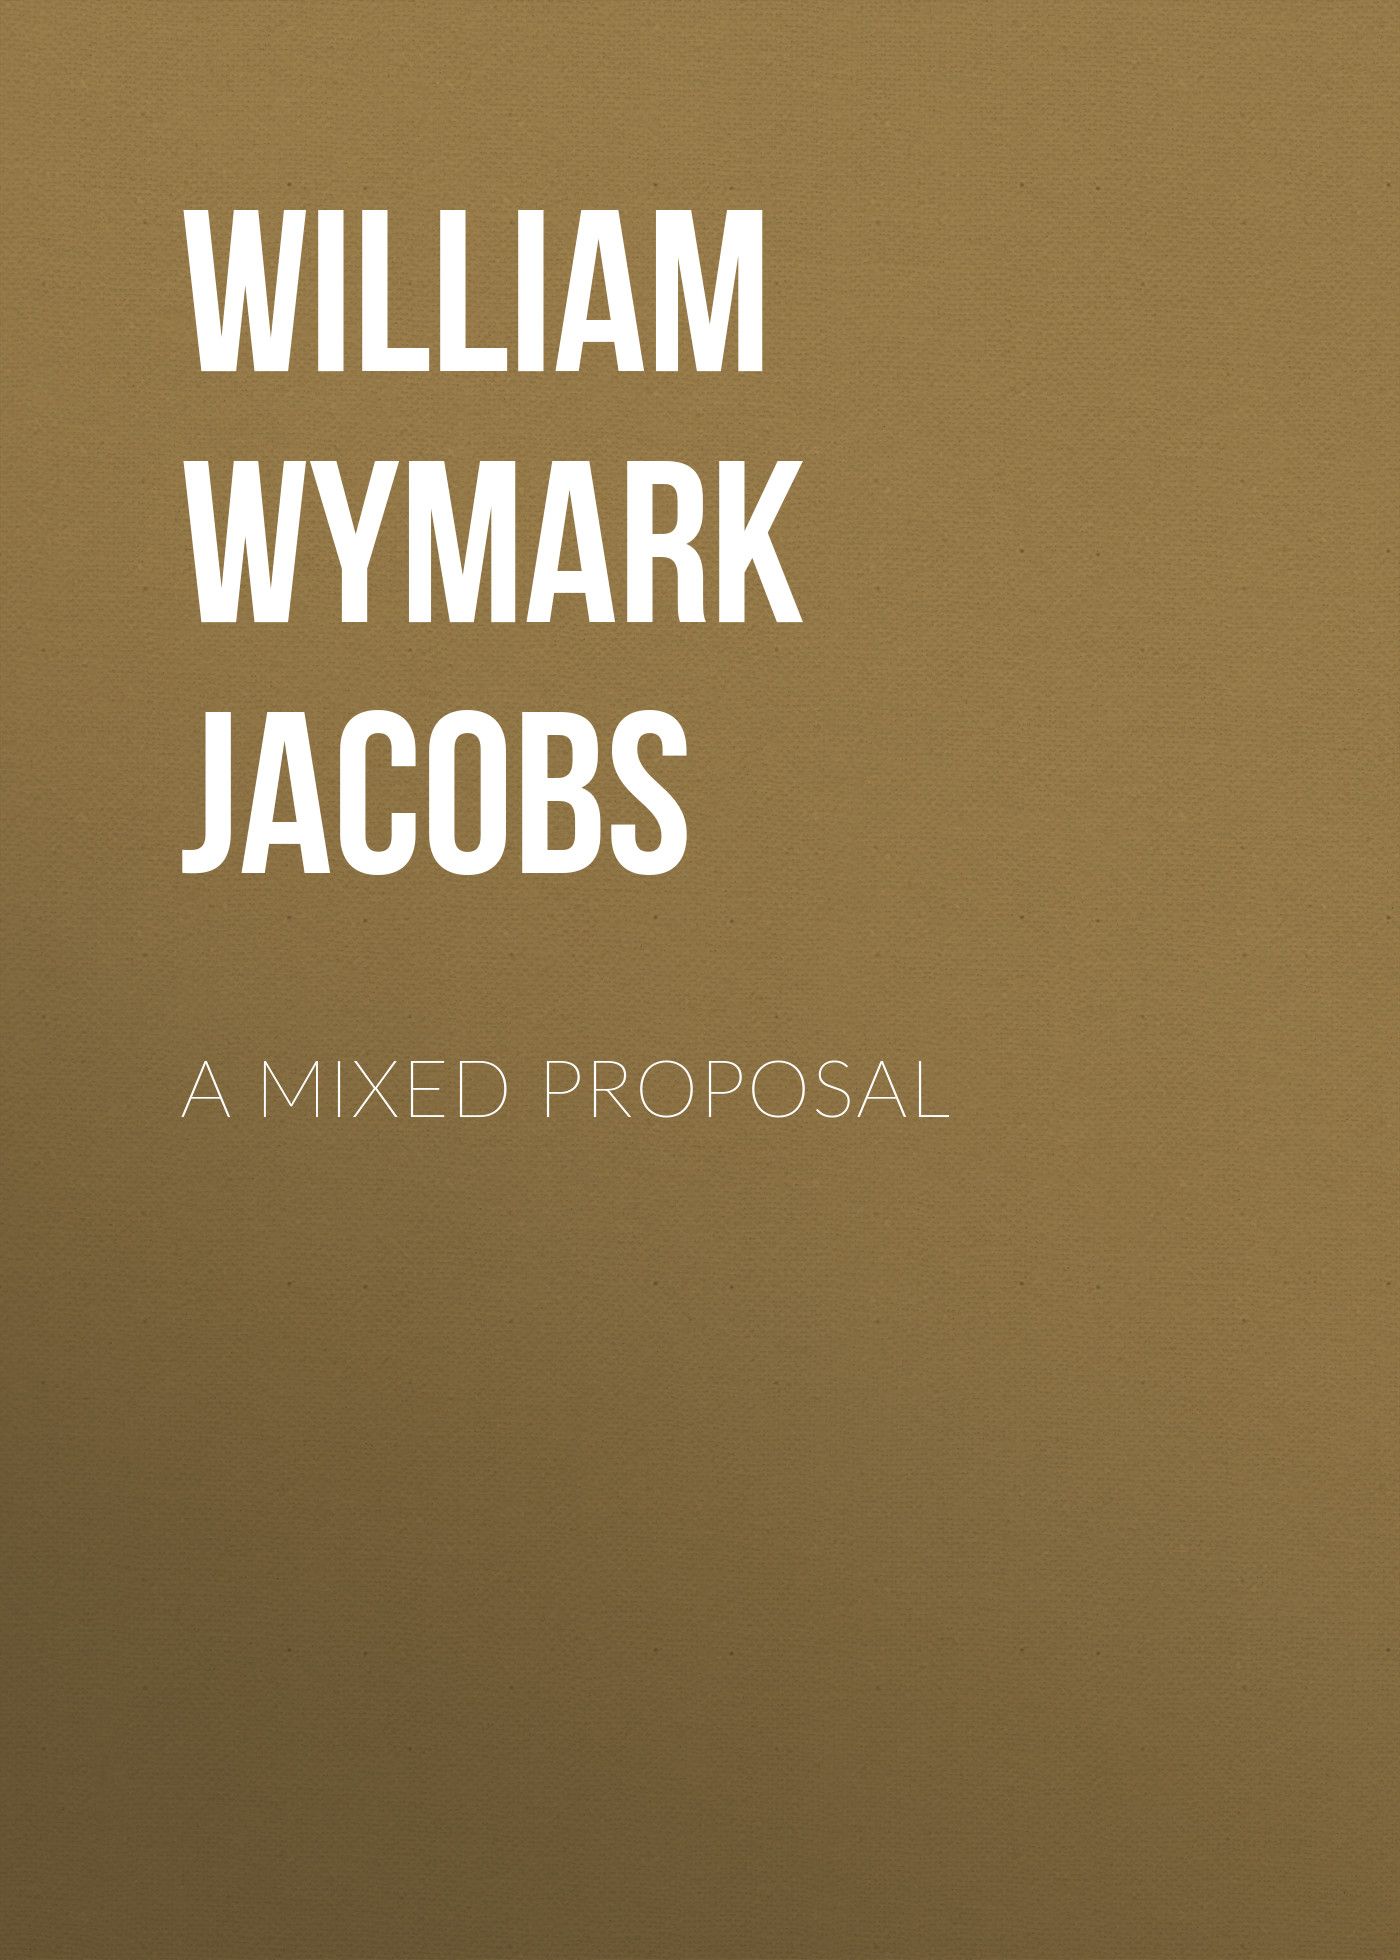 лучшая цена William Wymark Jacobs A Mixed Proposal